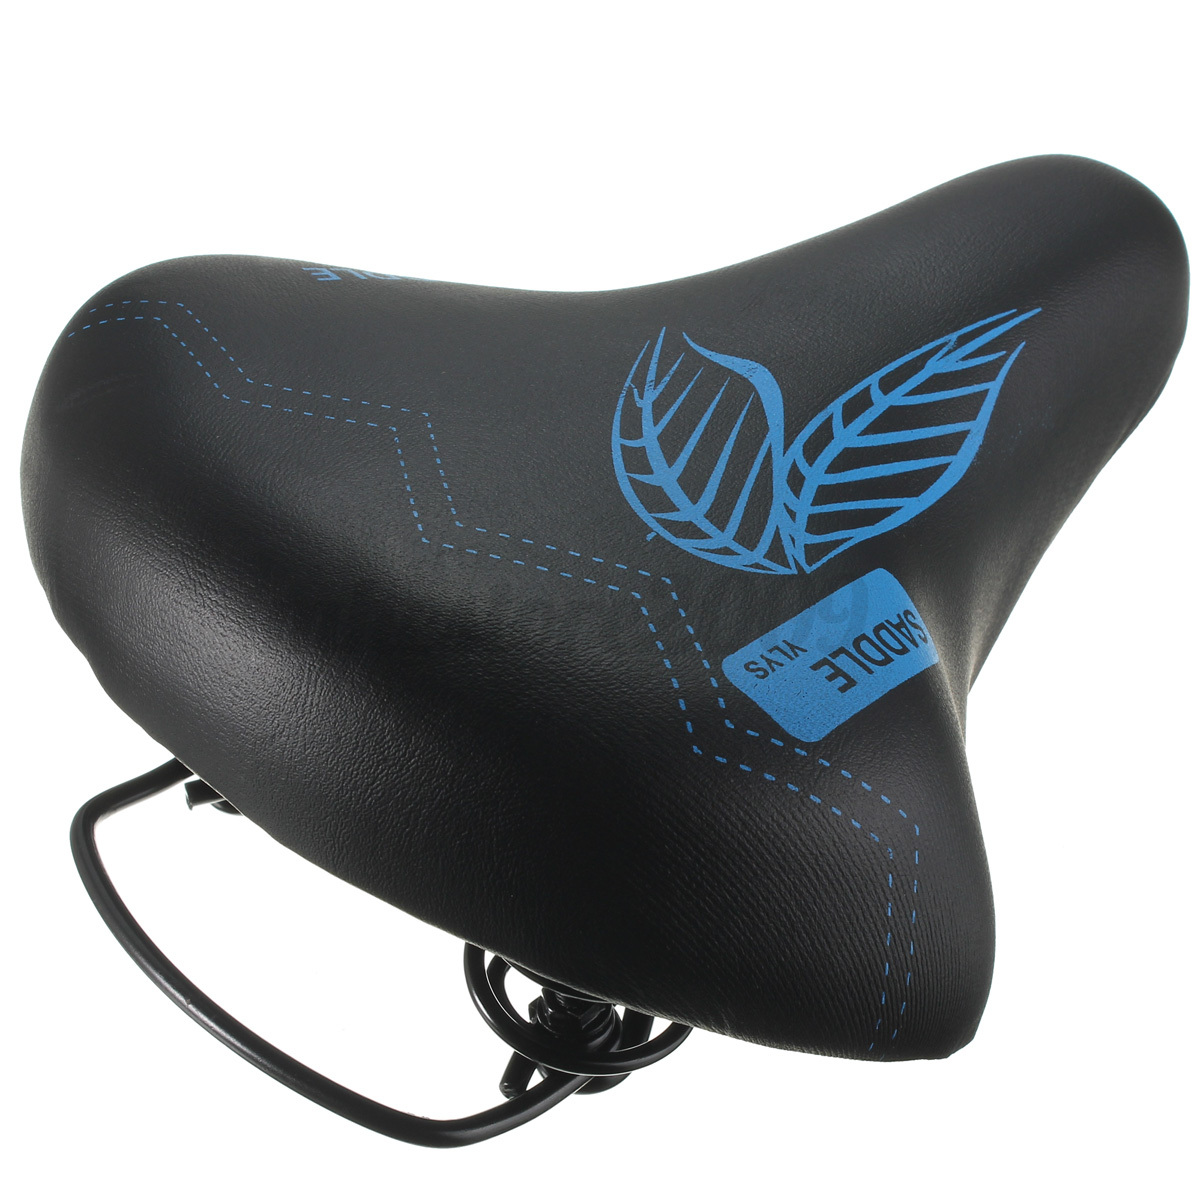 Mountain Bike Bicycle Cycling Saddle Black Comfort Soft Riding Seat Pro Road